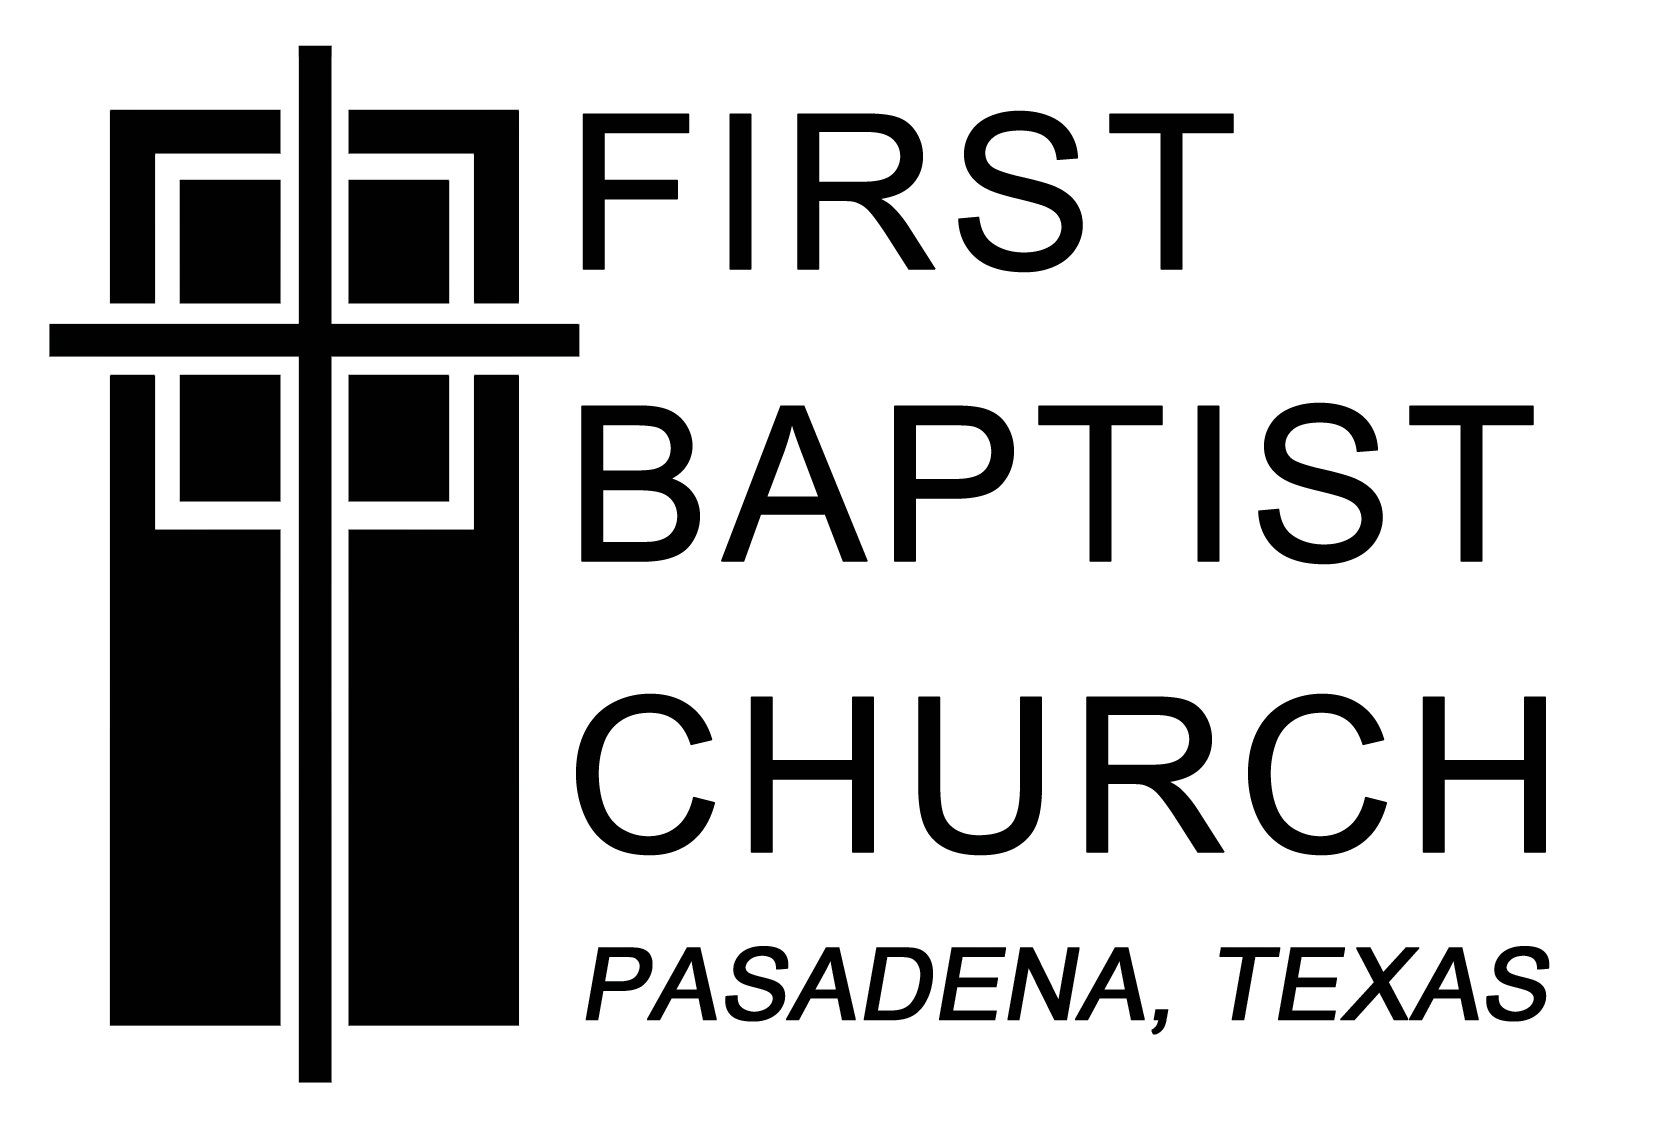 First Baptist Church of Pasadena